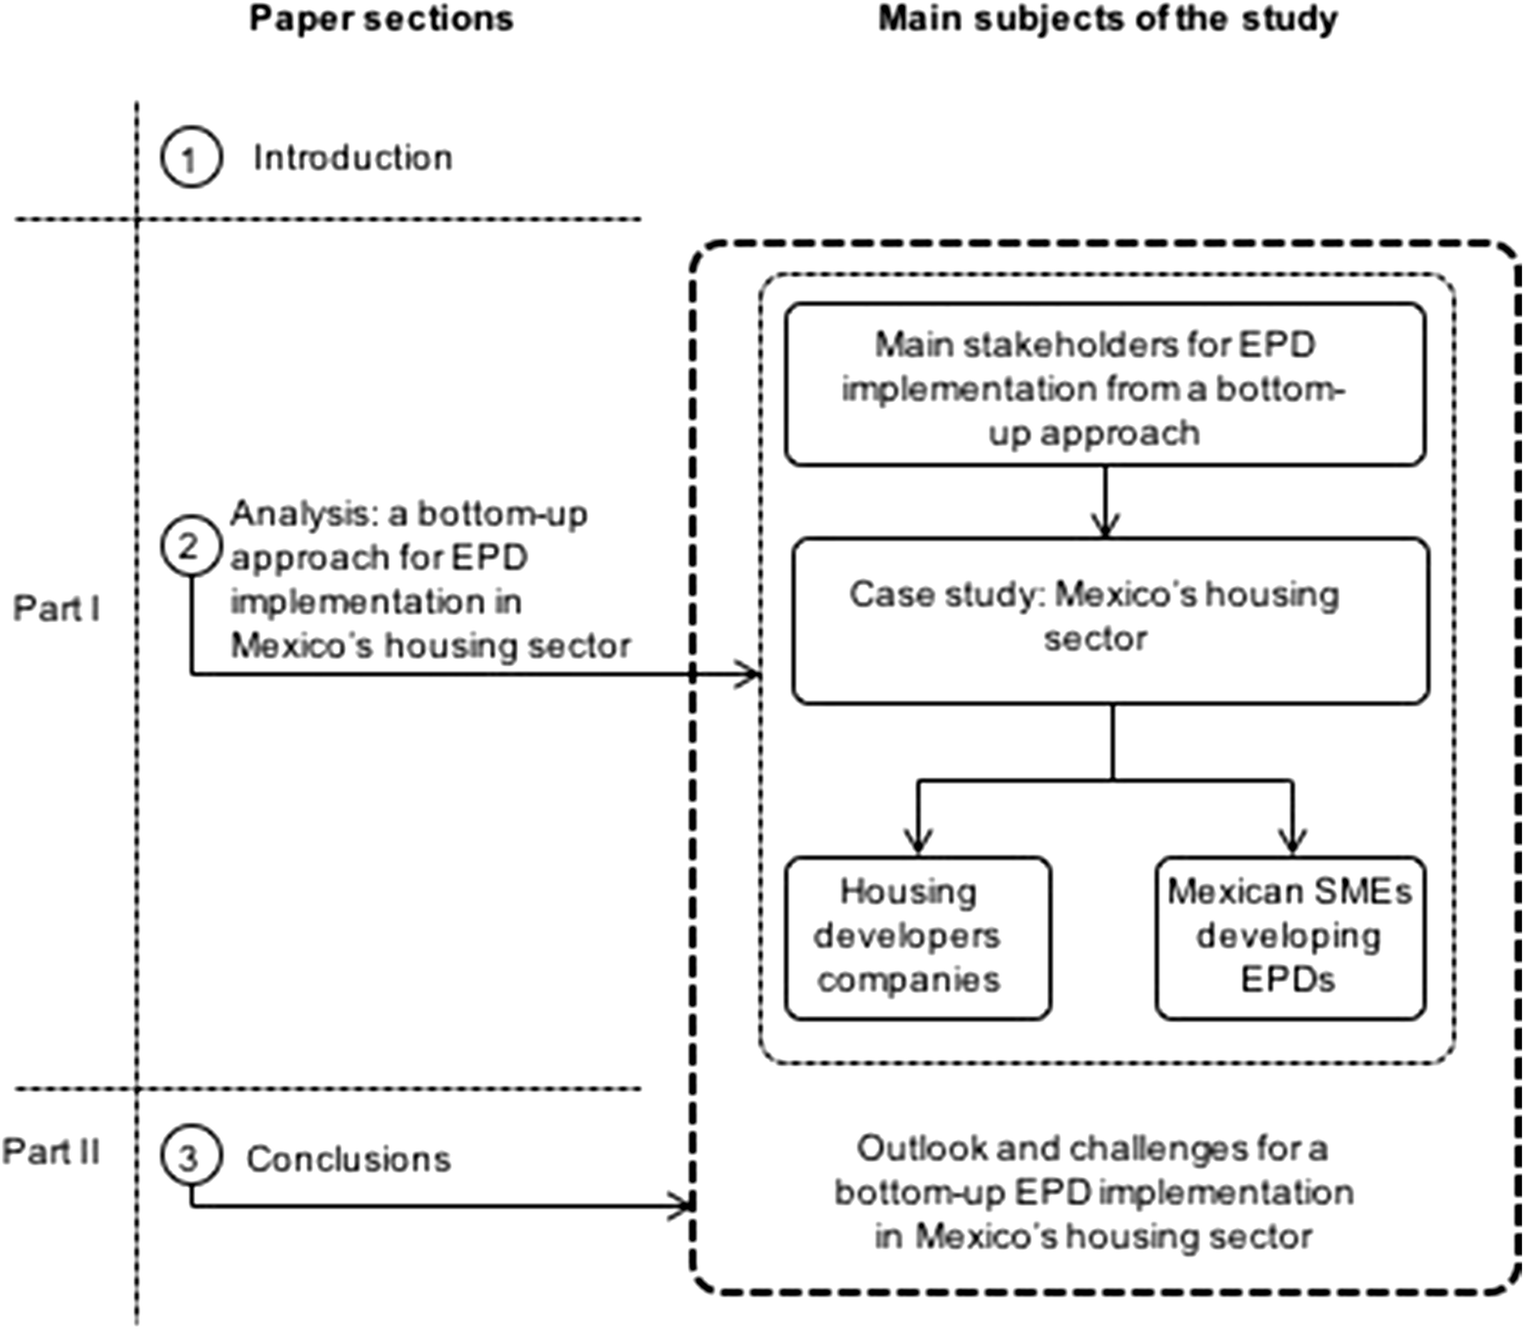 A bottom-up approach for implementation of Environmental